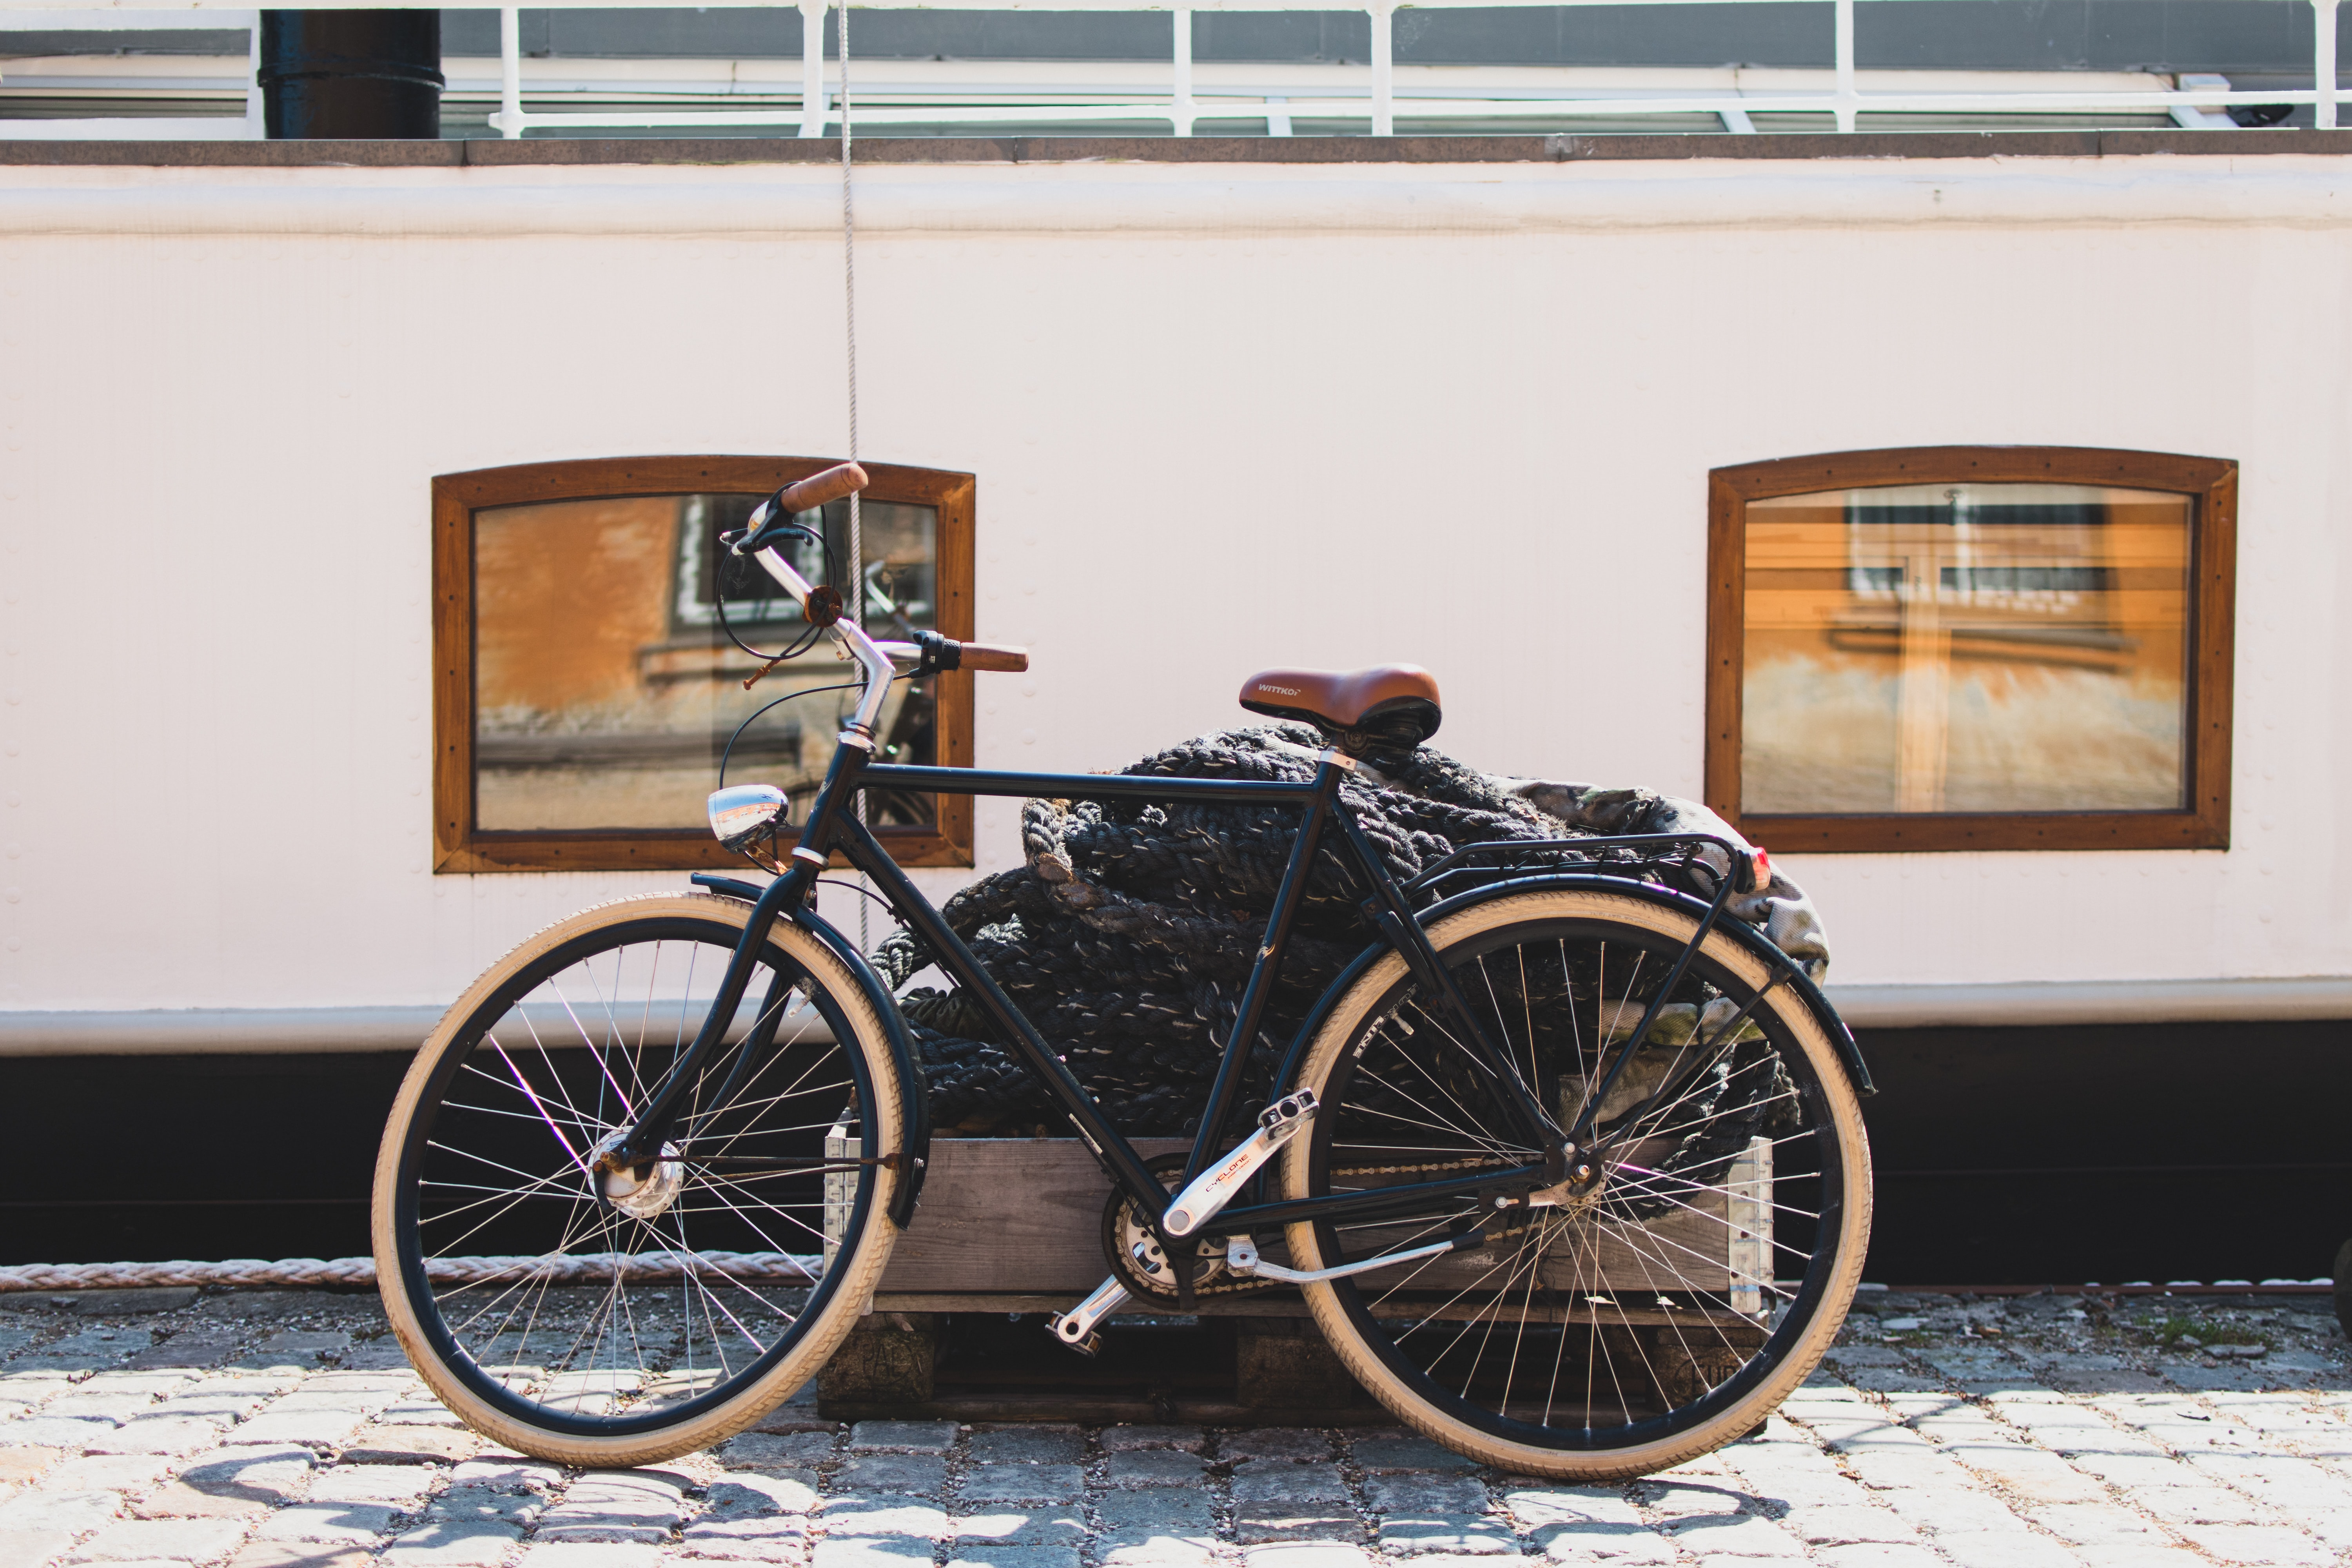 Bicycle on a cobblestone street in Copehagen in front of rope and two windows